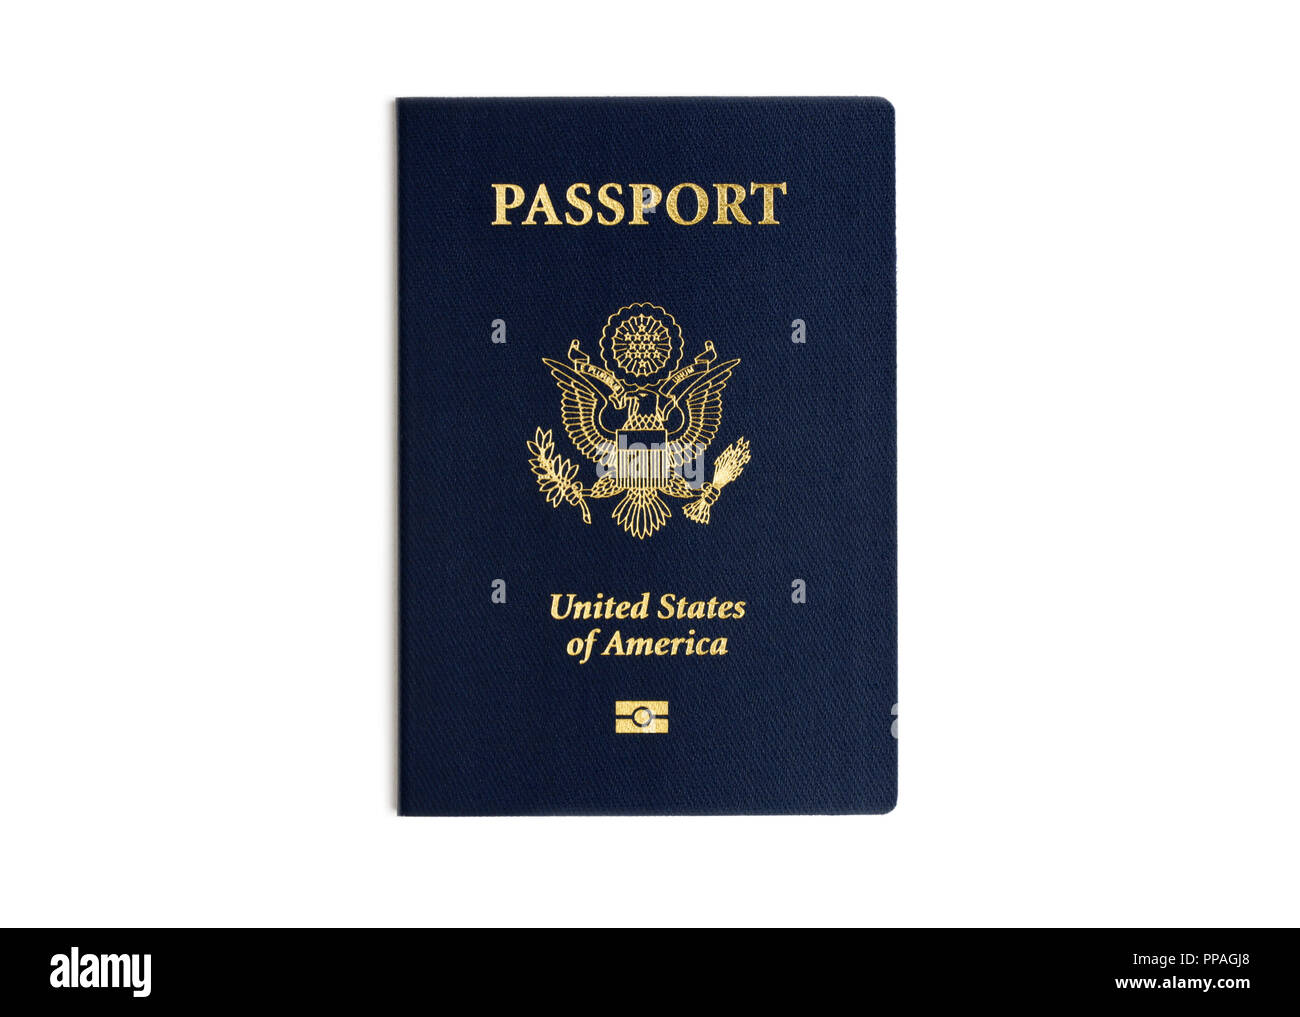 Passport United States passport - Stock Image